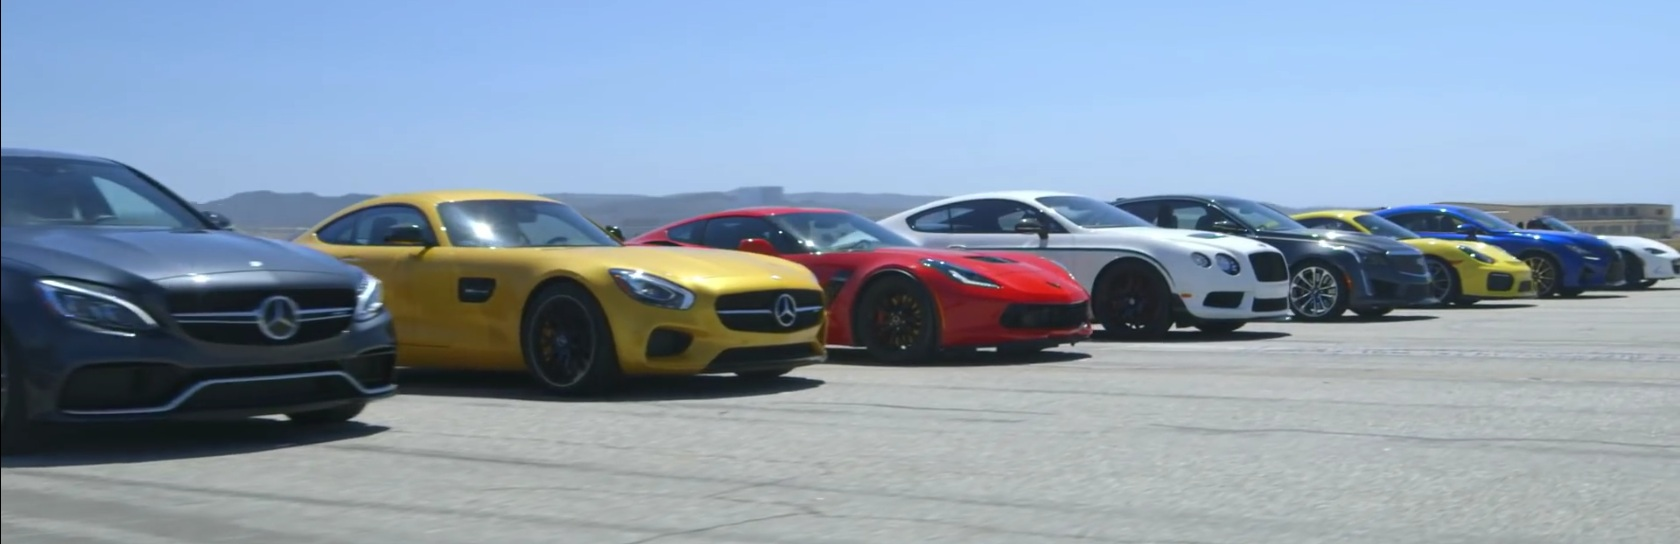 The Ultimate Luxury Muscle Car Race...Who Is fastest? - Muscle Car Boss